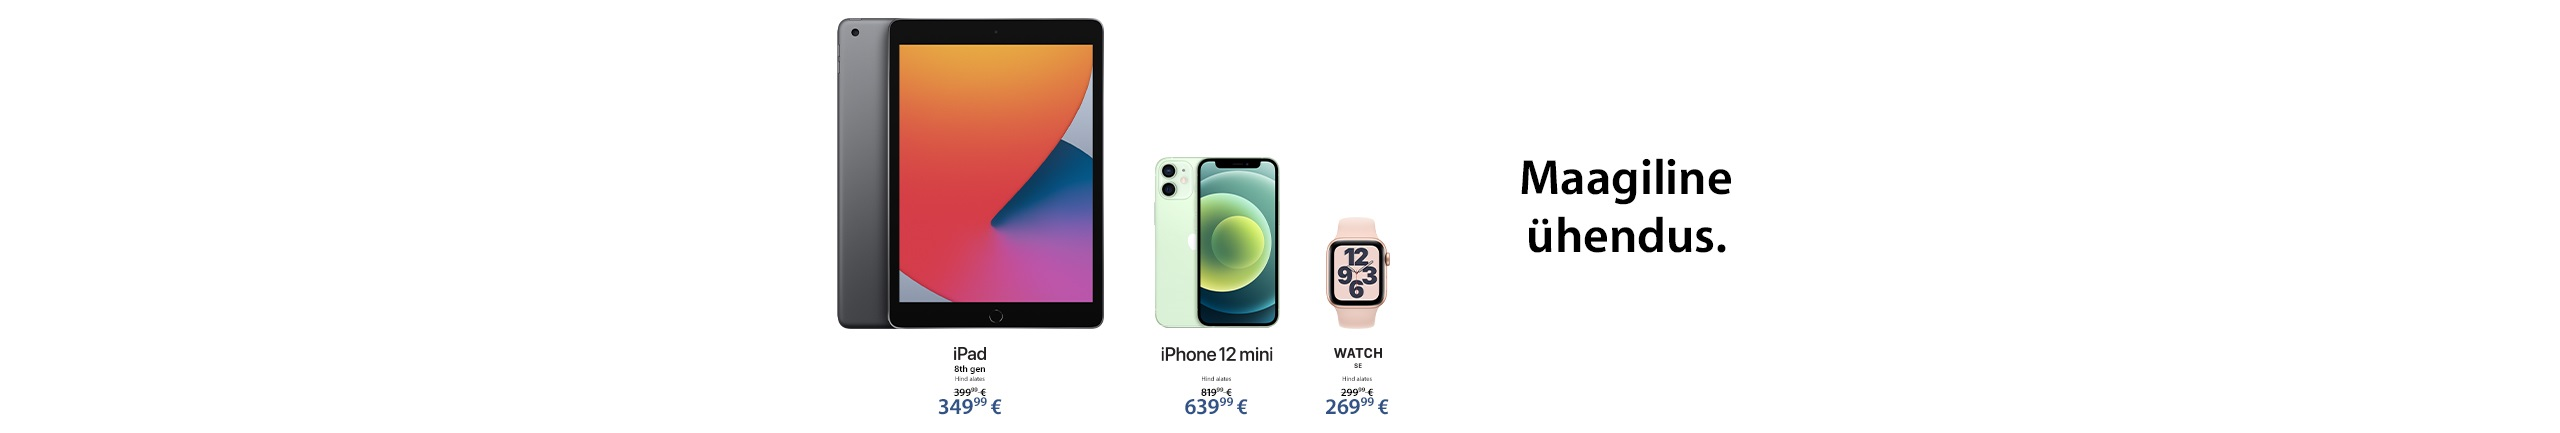 NPL Apple special offers